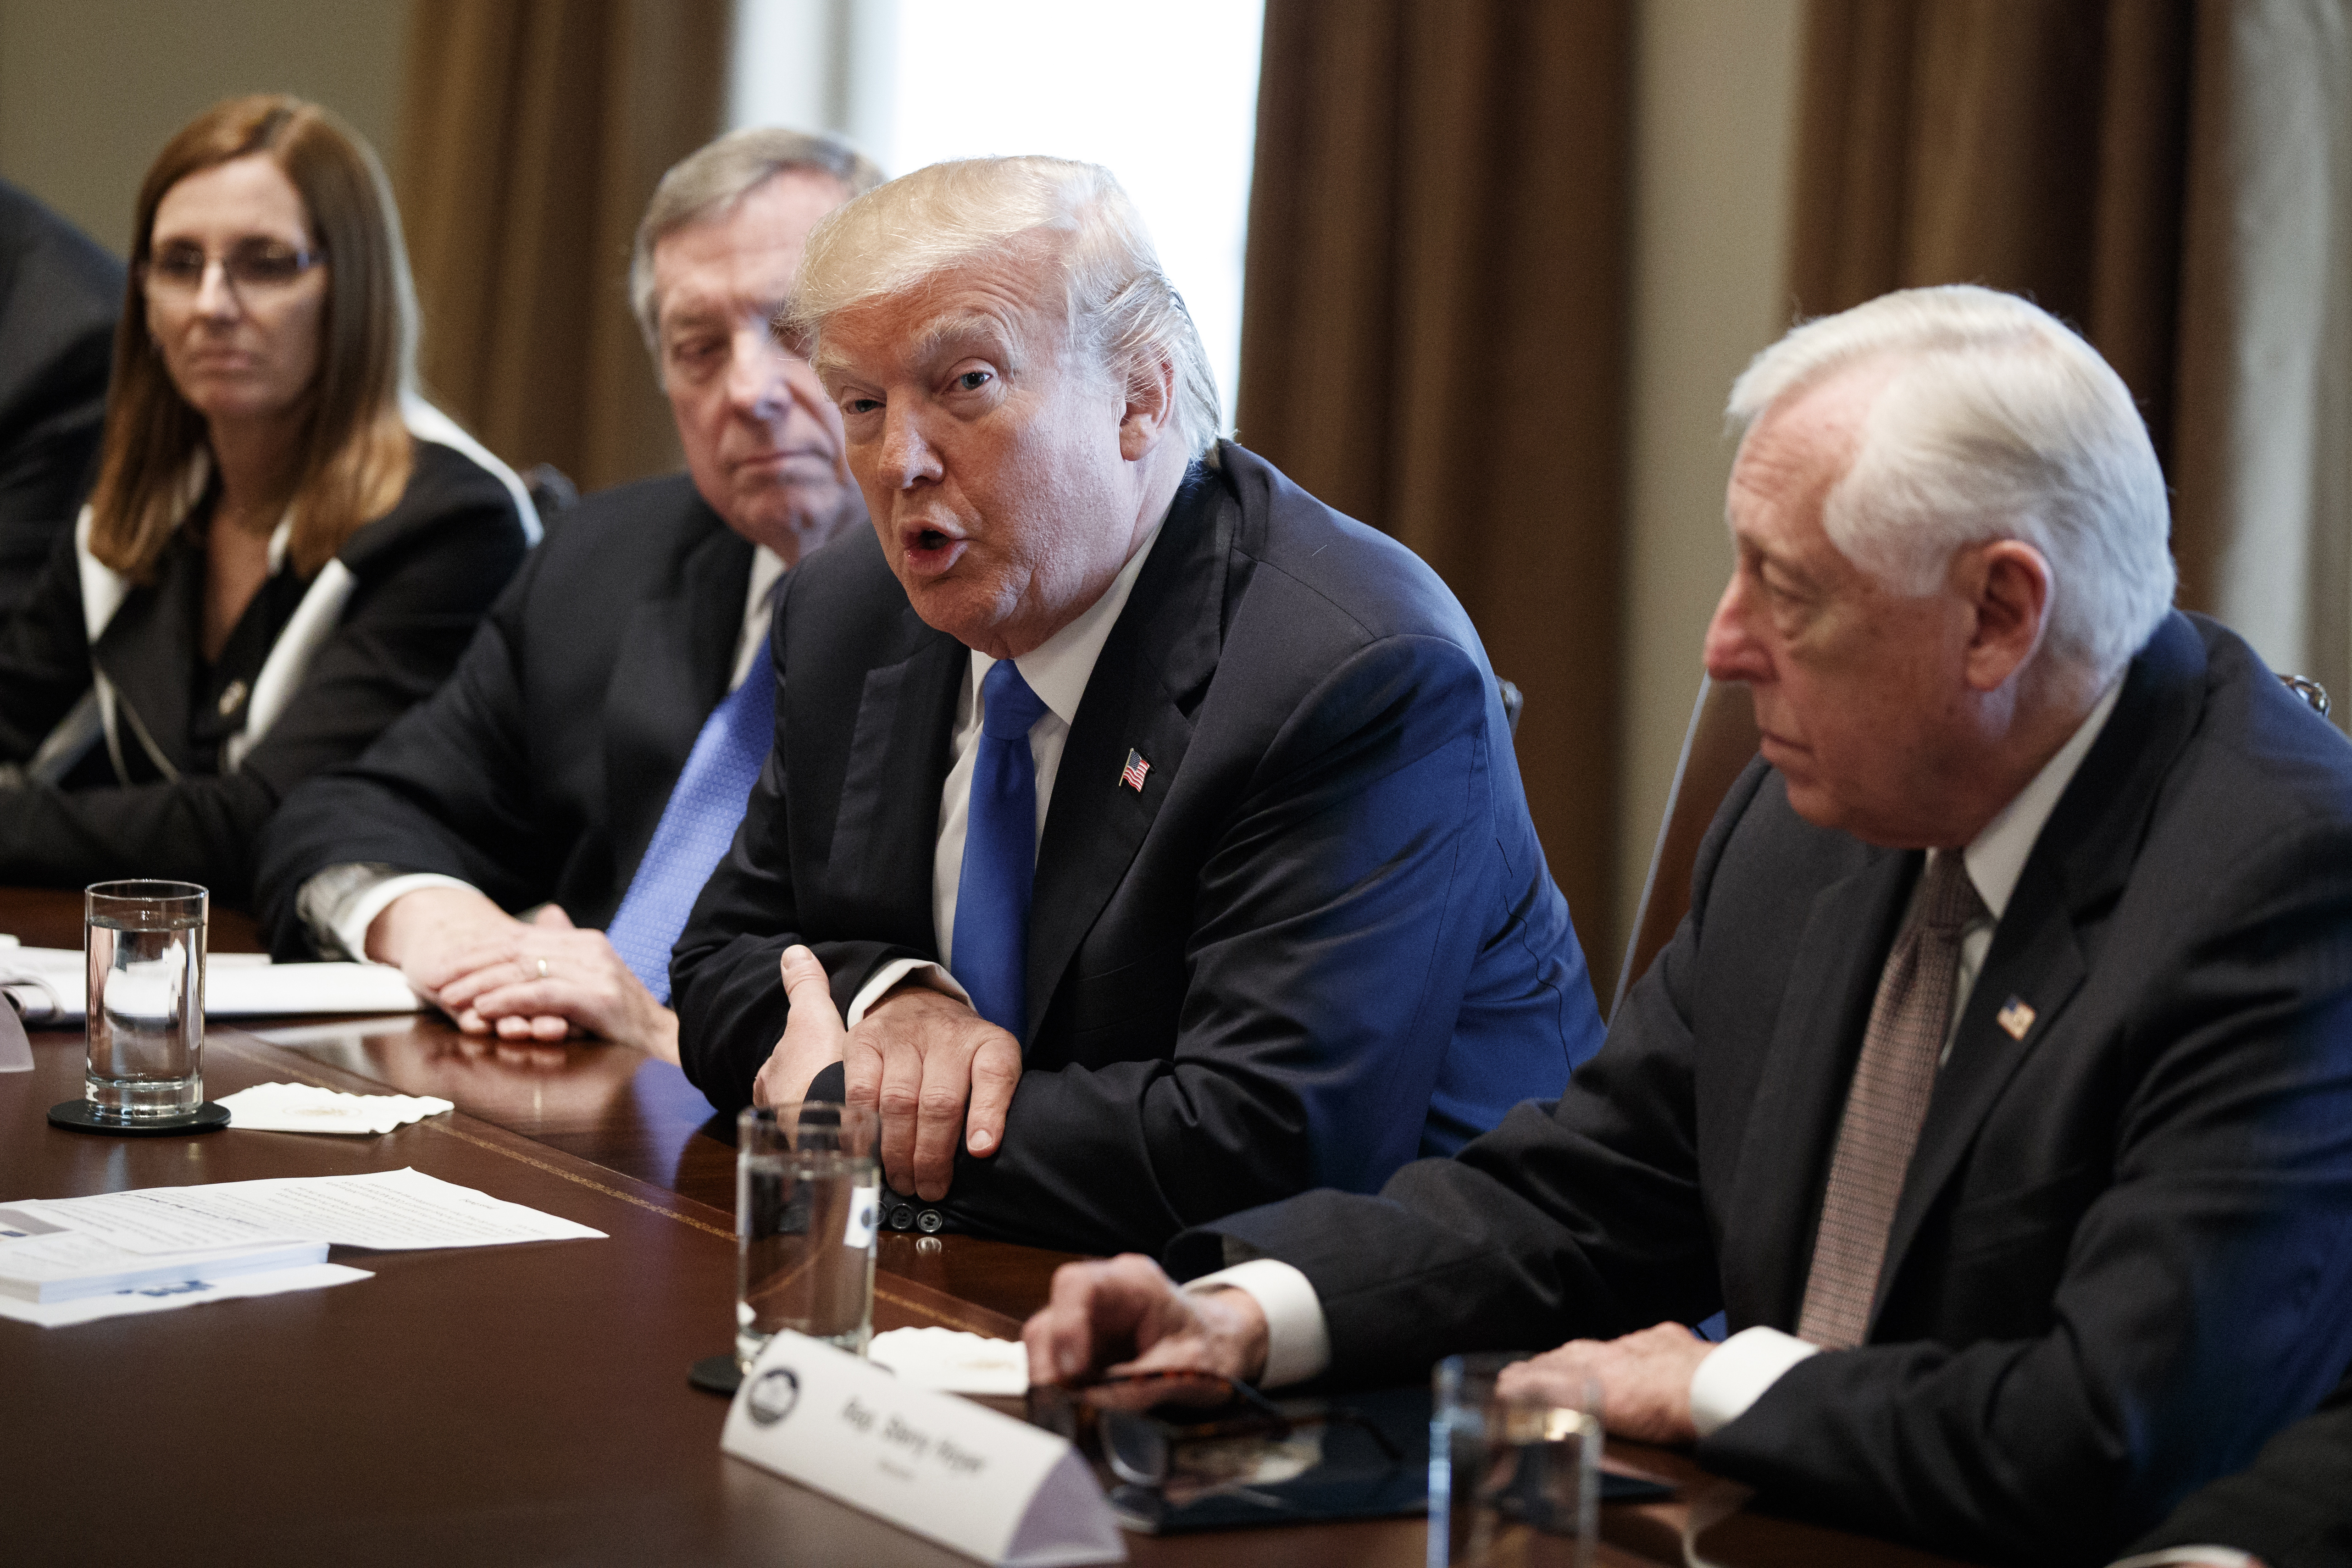 President Donald Trump speaks during a meeting with lawmakers on immigration policy in the Cabinet Room of the White House, Jan. 9, 2018, in Washington.